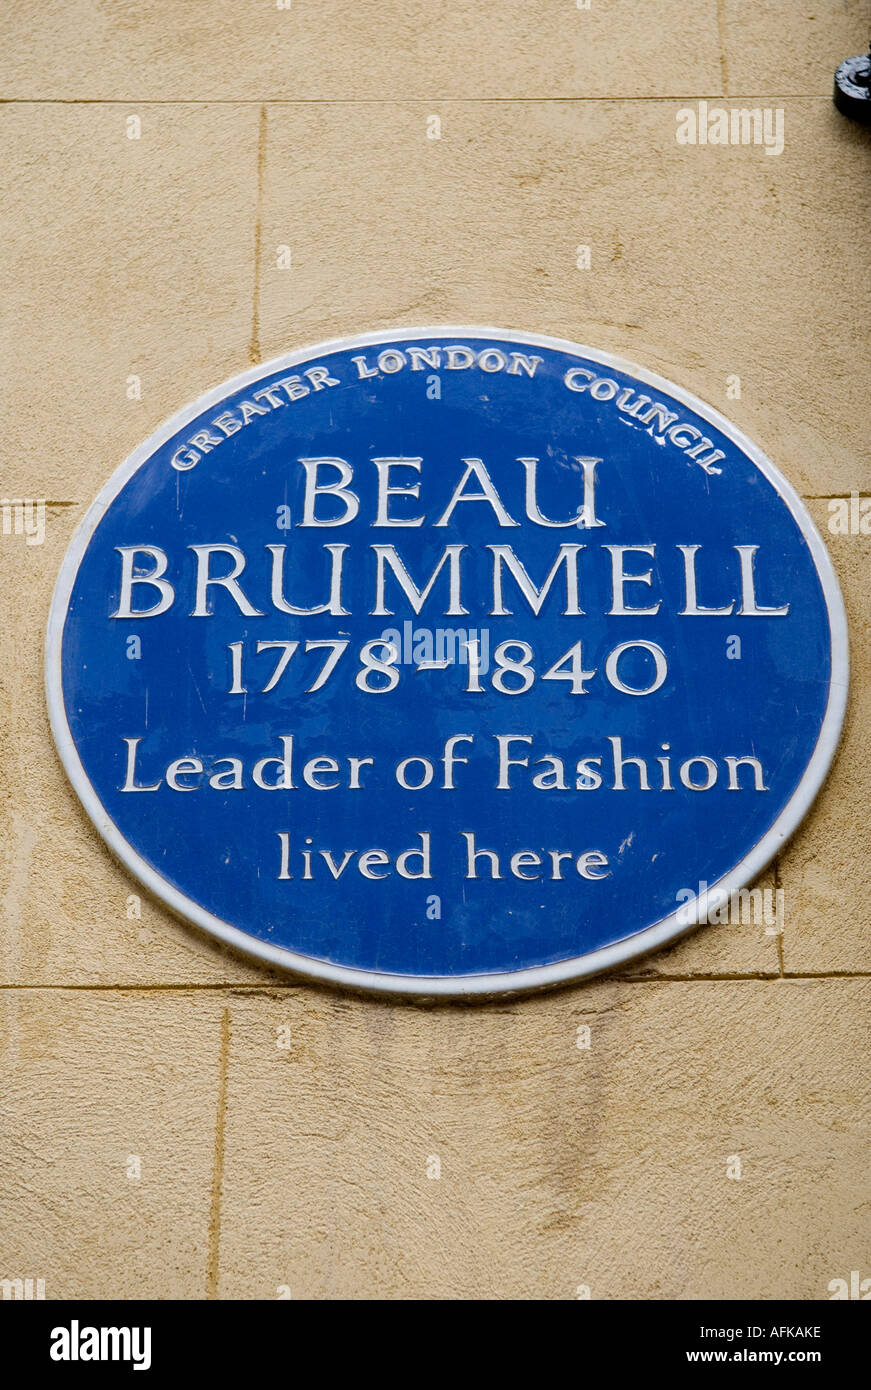 Greater London Council Blue plaque for Beau Brummell.  4 'Chesterfield Street' Mayfair London W1 England - Stock Image